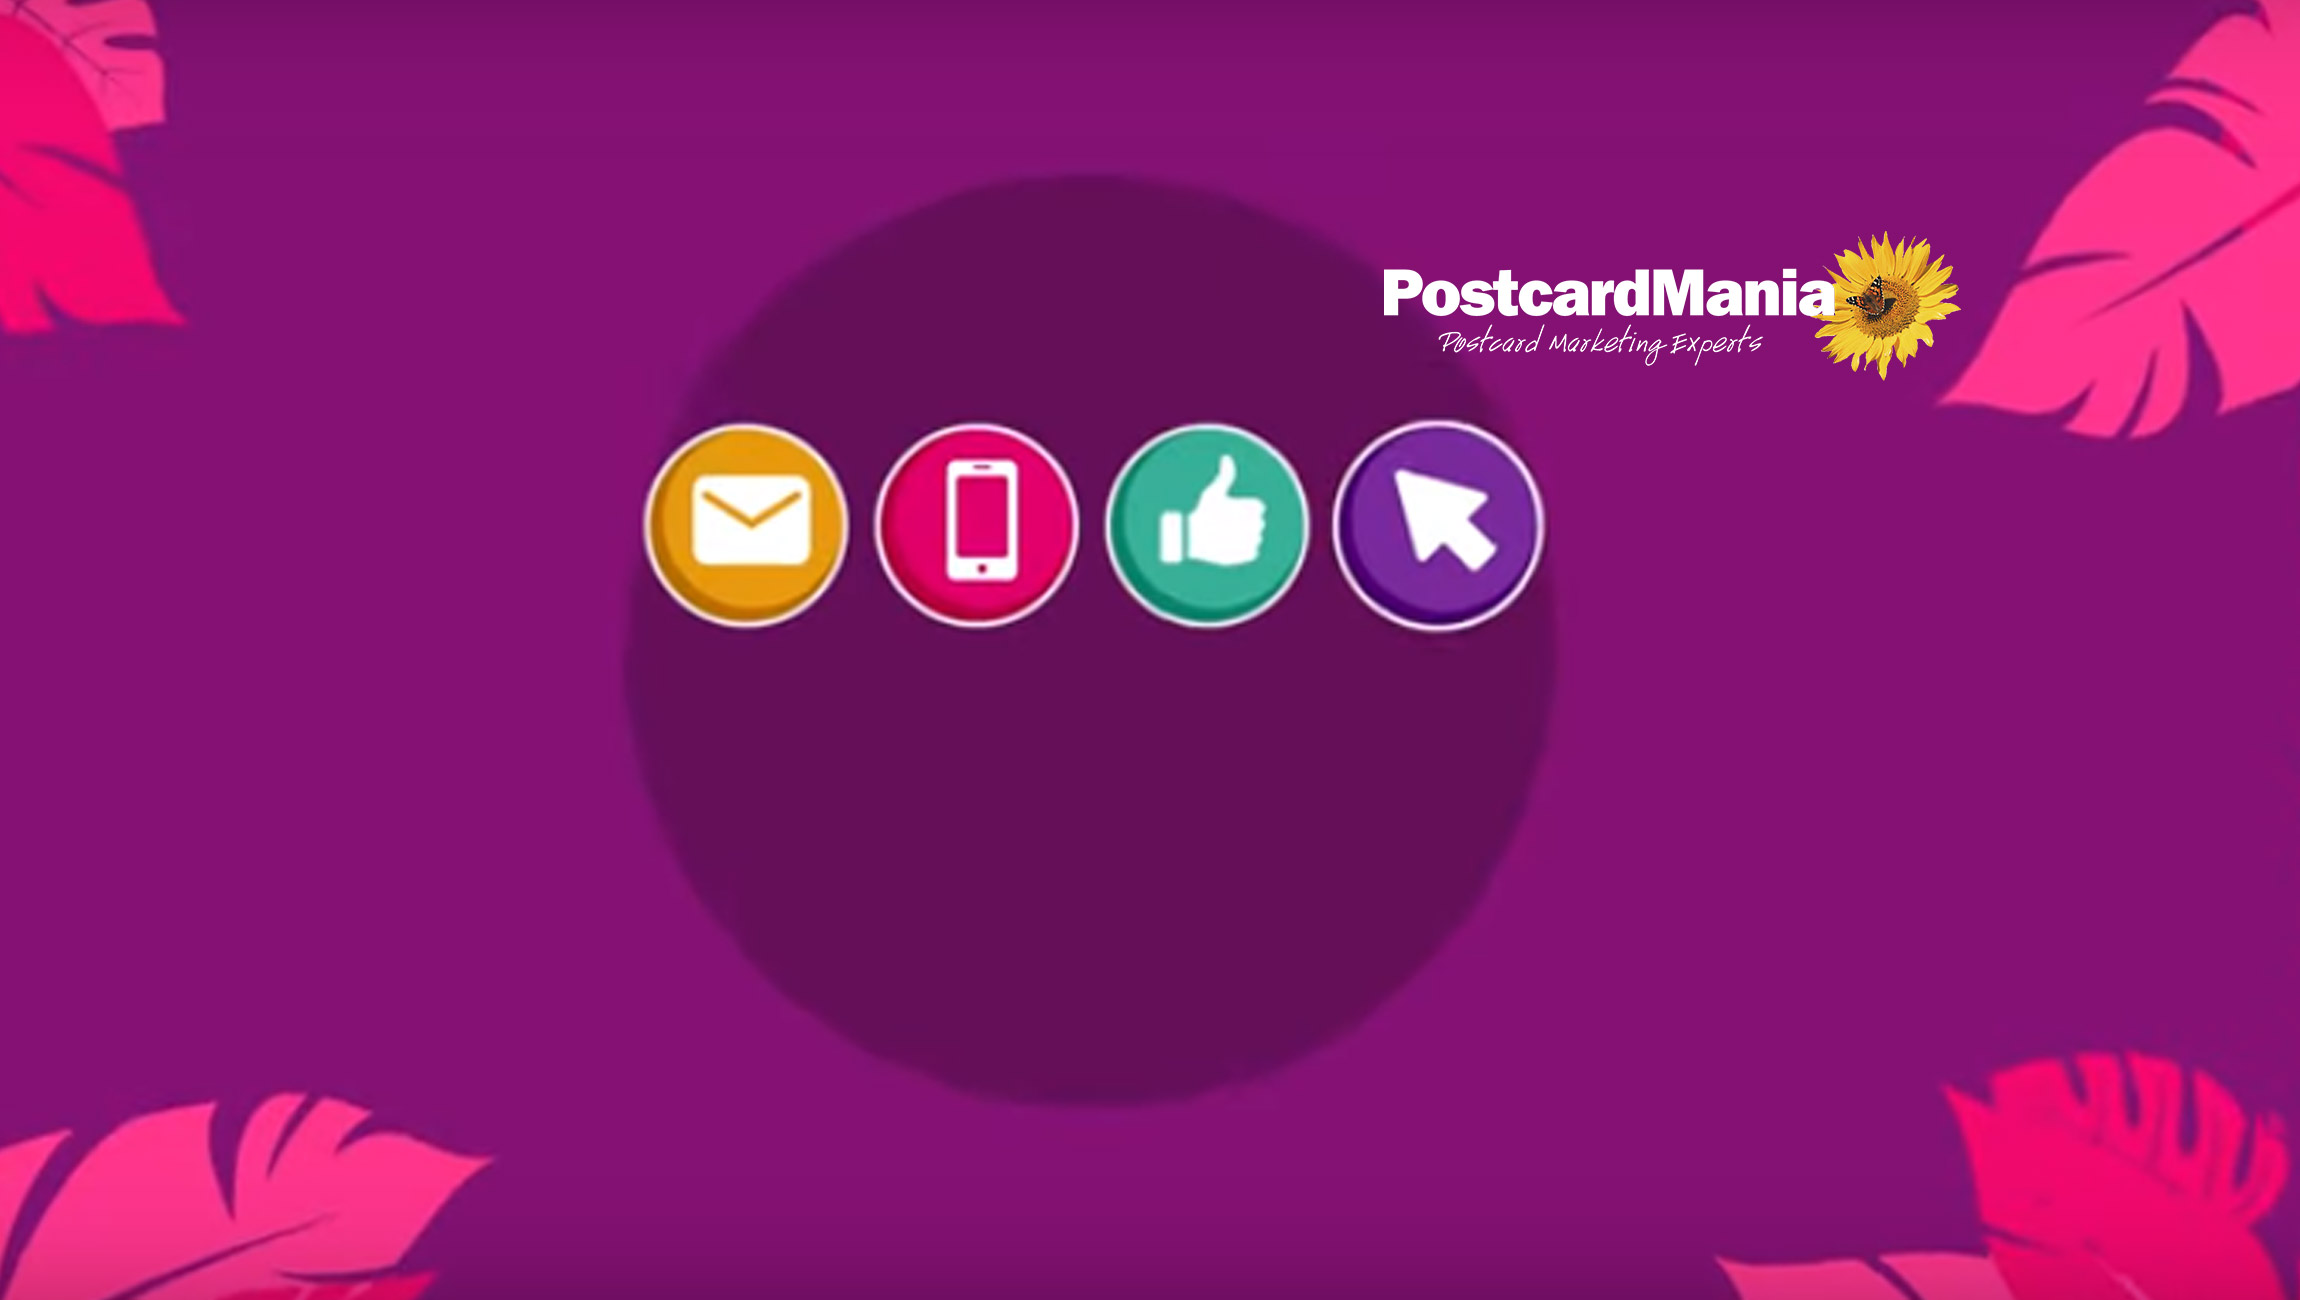 PostcardMania Releases Direct Mail Integration for Data Companies, CRMs and Franchises: New Software is 1st to Trigger Proven Mailer Designs Based on 239,396 Campaigns